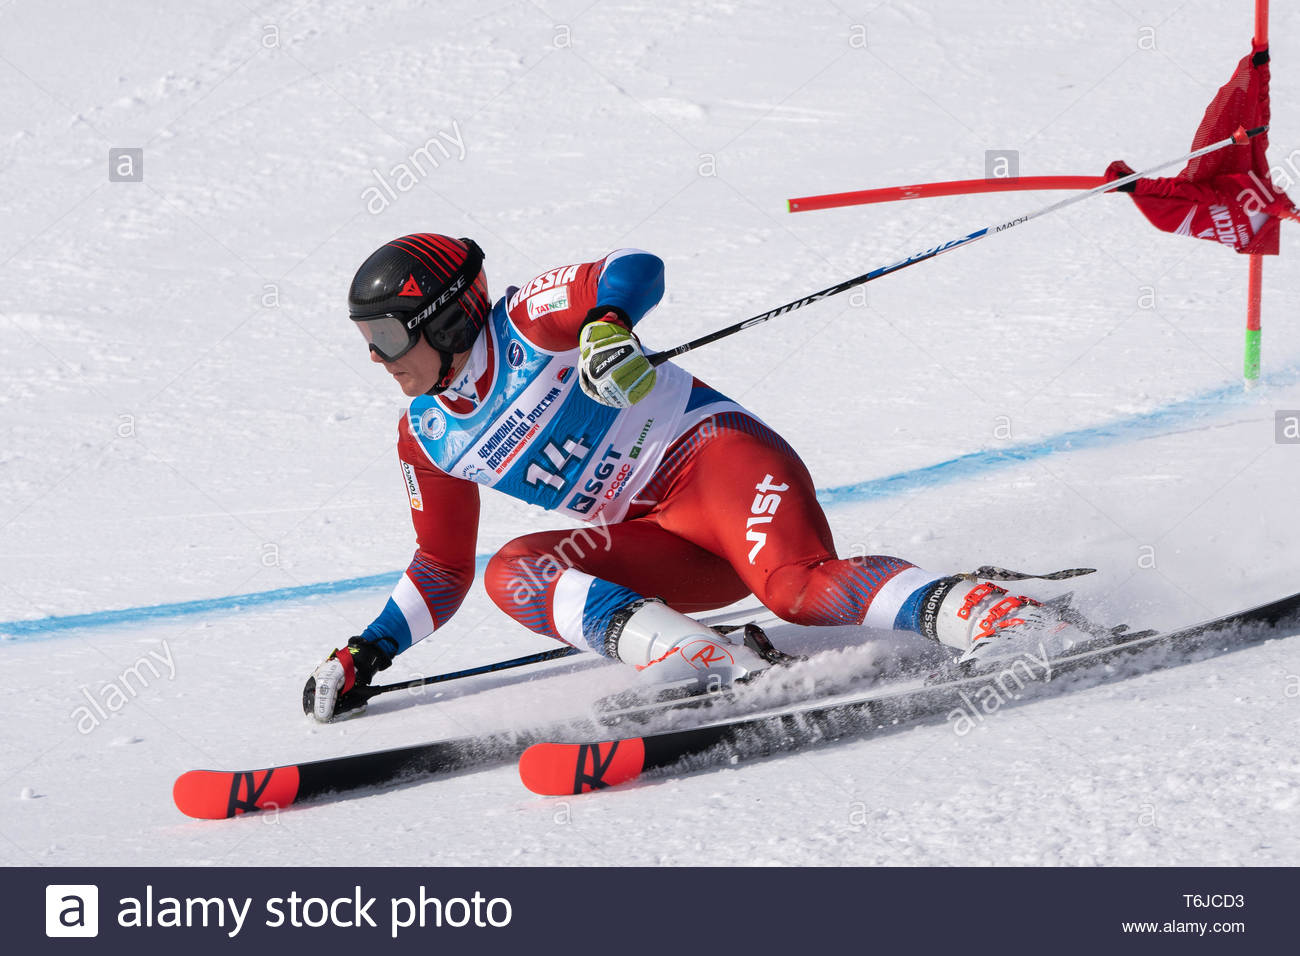 KAMCHATKA PENINSULA, RUSSIA - APR 1, 2019: Mountain skier Trihichev Pavel (Moscow) skiing down mount slope. Russian Alpine Skiing Cup, International S - Stock Image